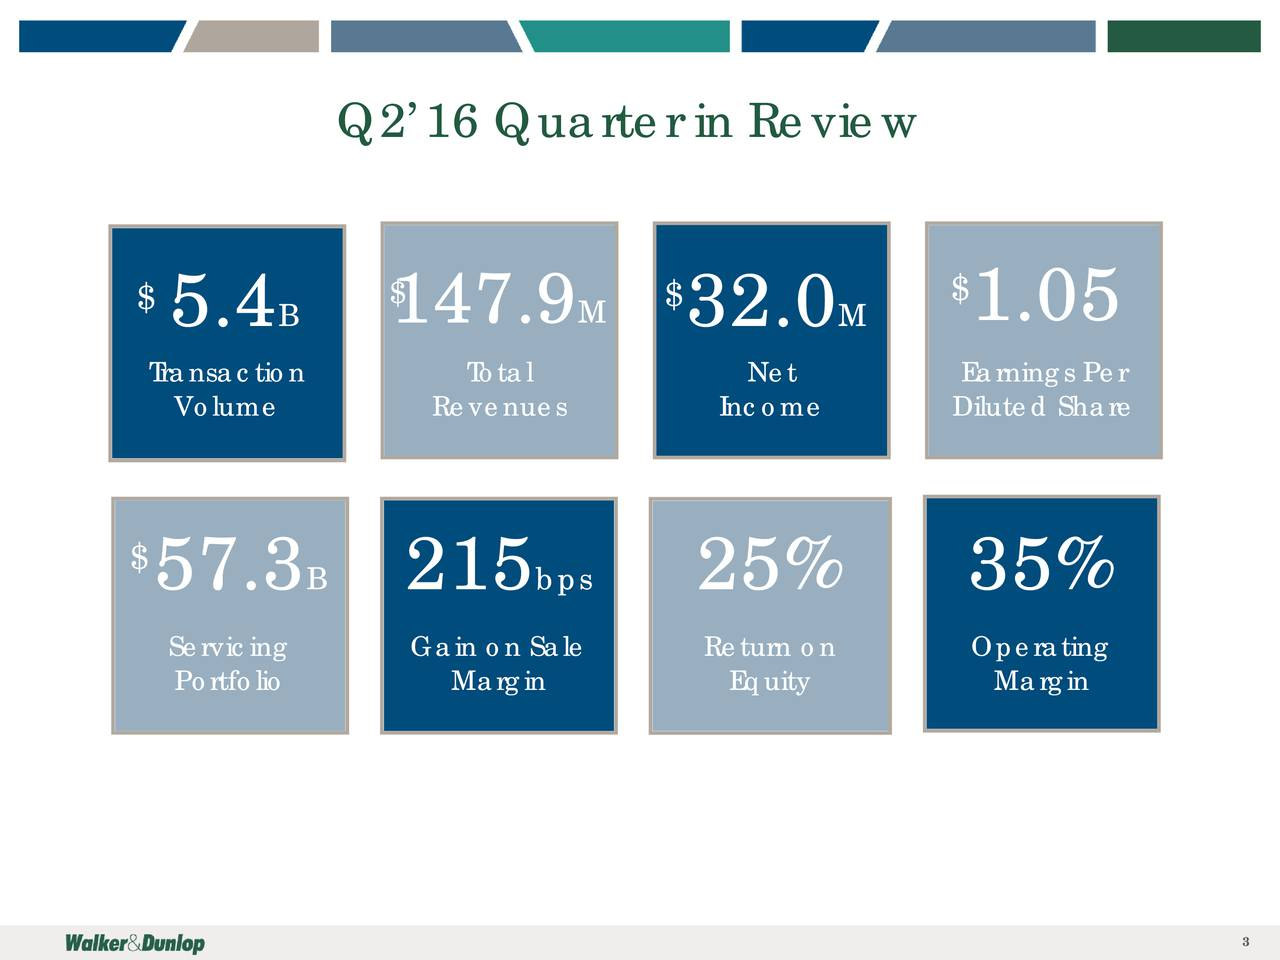 $ $ $ $ 5.4 B 147.9 M 32.0 M 1.05 Transaction Total Net Earnings Per Volume Revenues Income Diluted Share $57.3 B 215 bps 25% 35% Servicing Gain on Sale Return on Operating Portfolio Margin Equity Margin